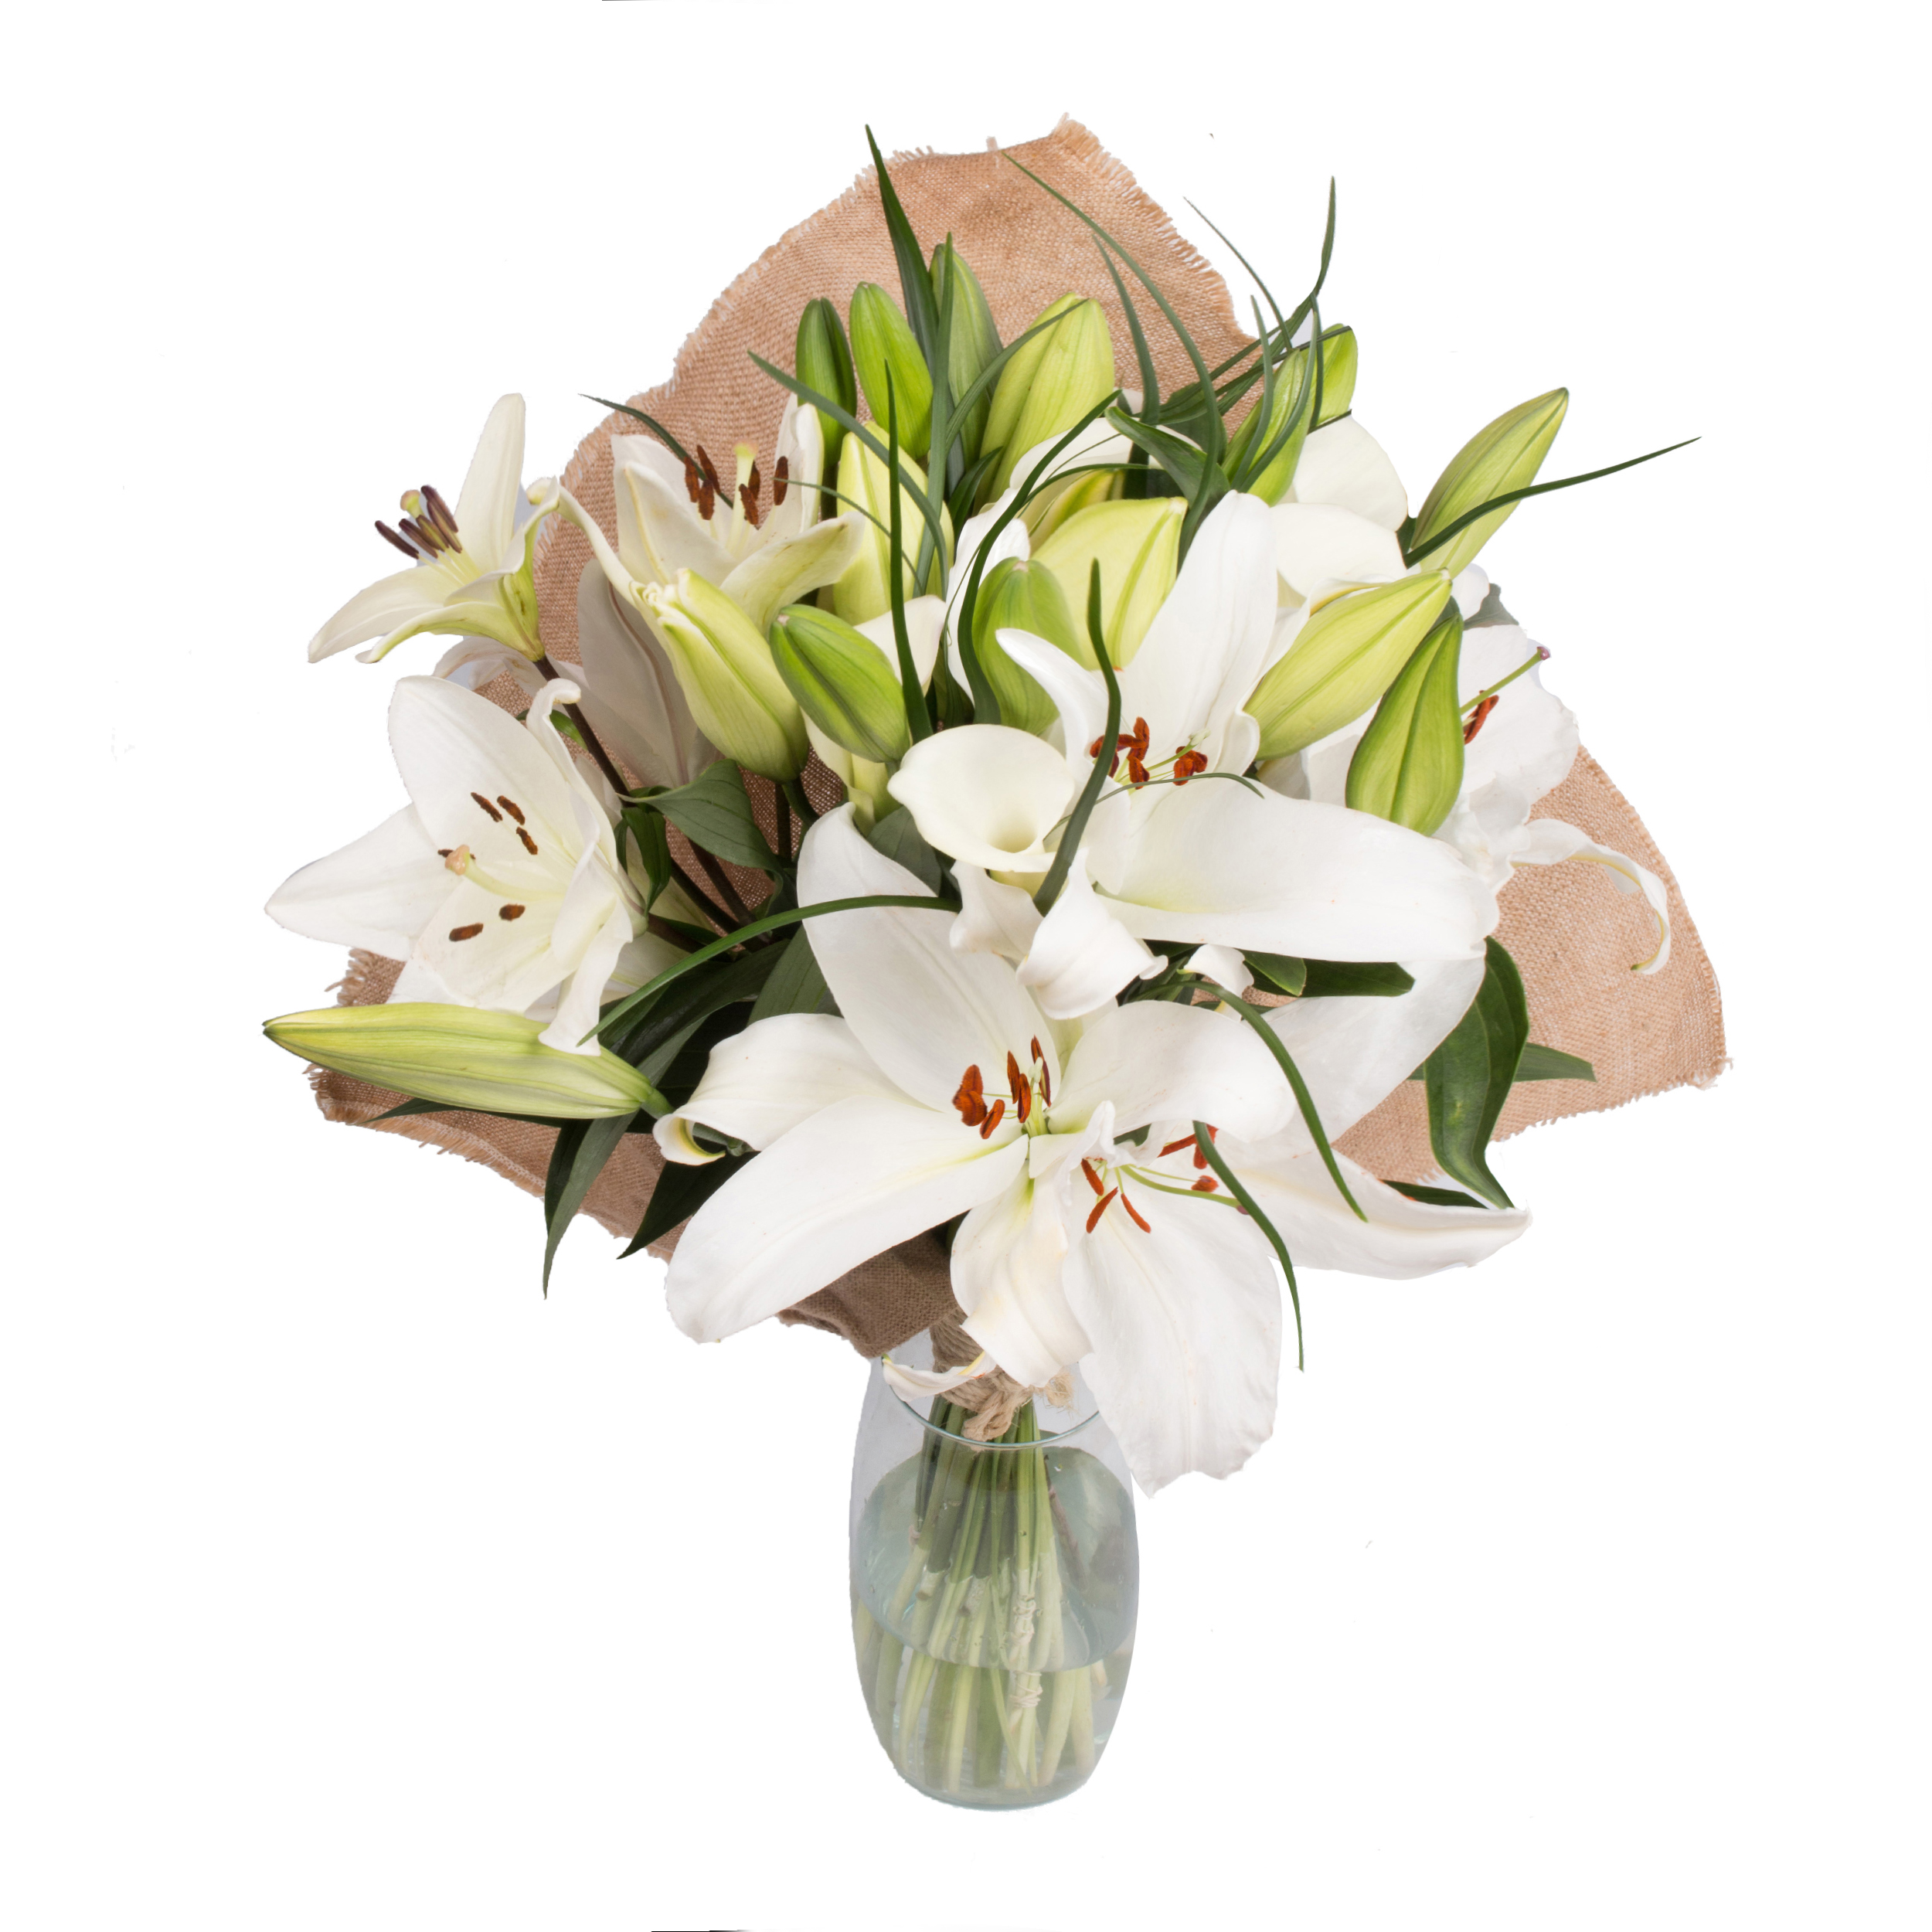 White Blossom Bouquet with Burlap - 19 Stems